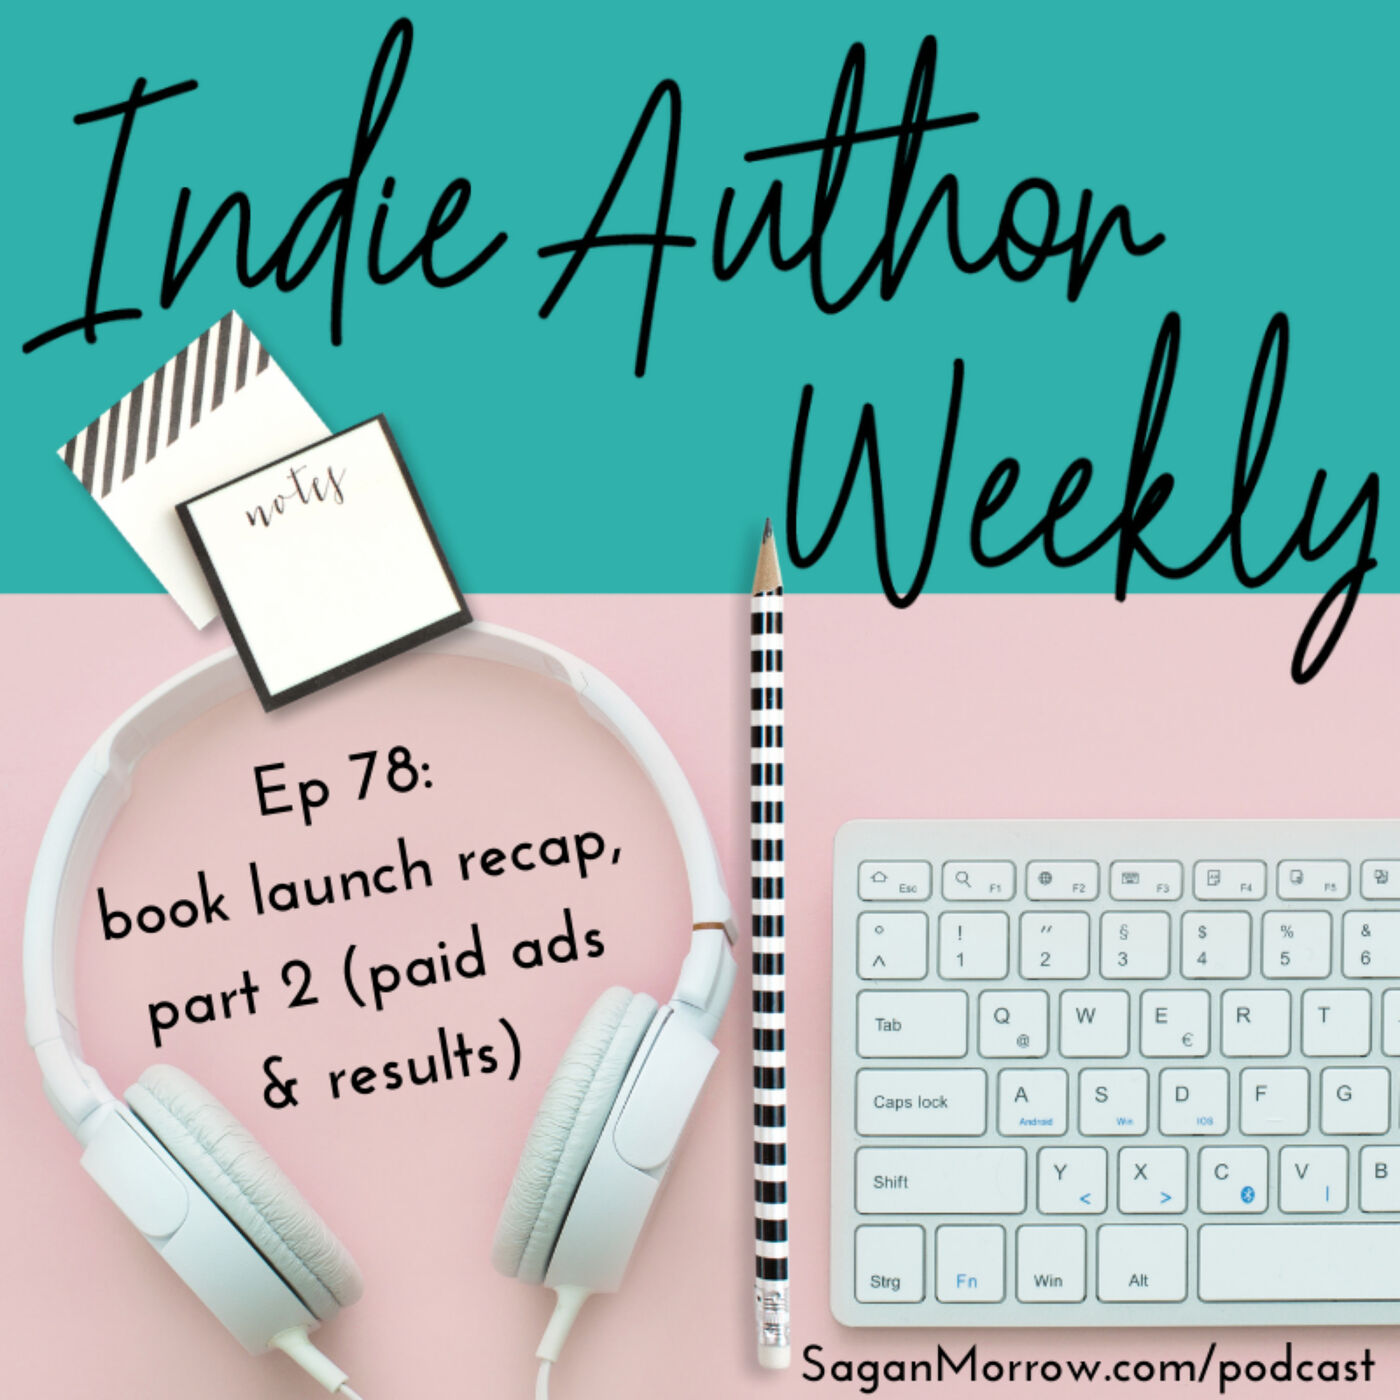 078: Book launch recap, part 2: paid ads & book sales results